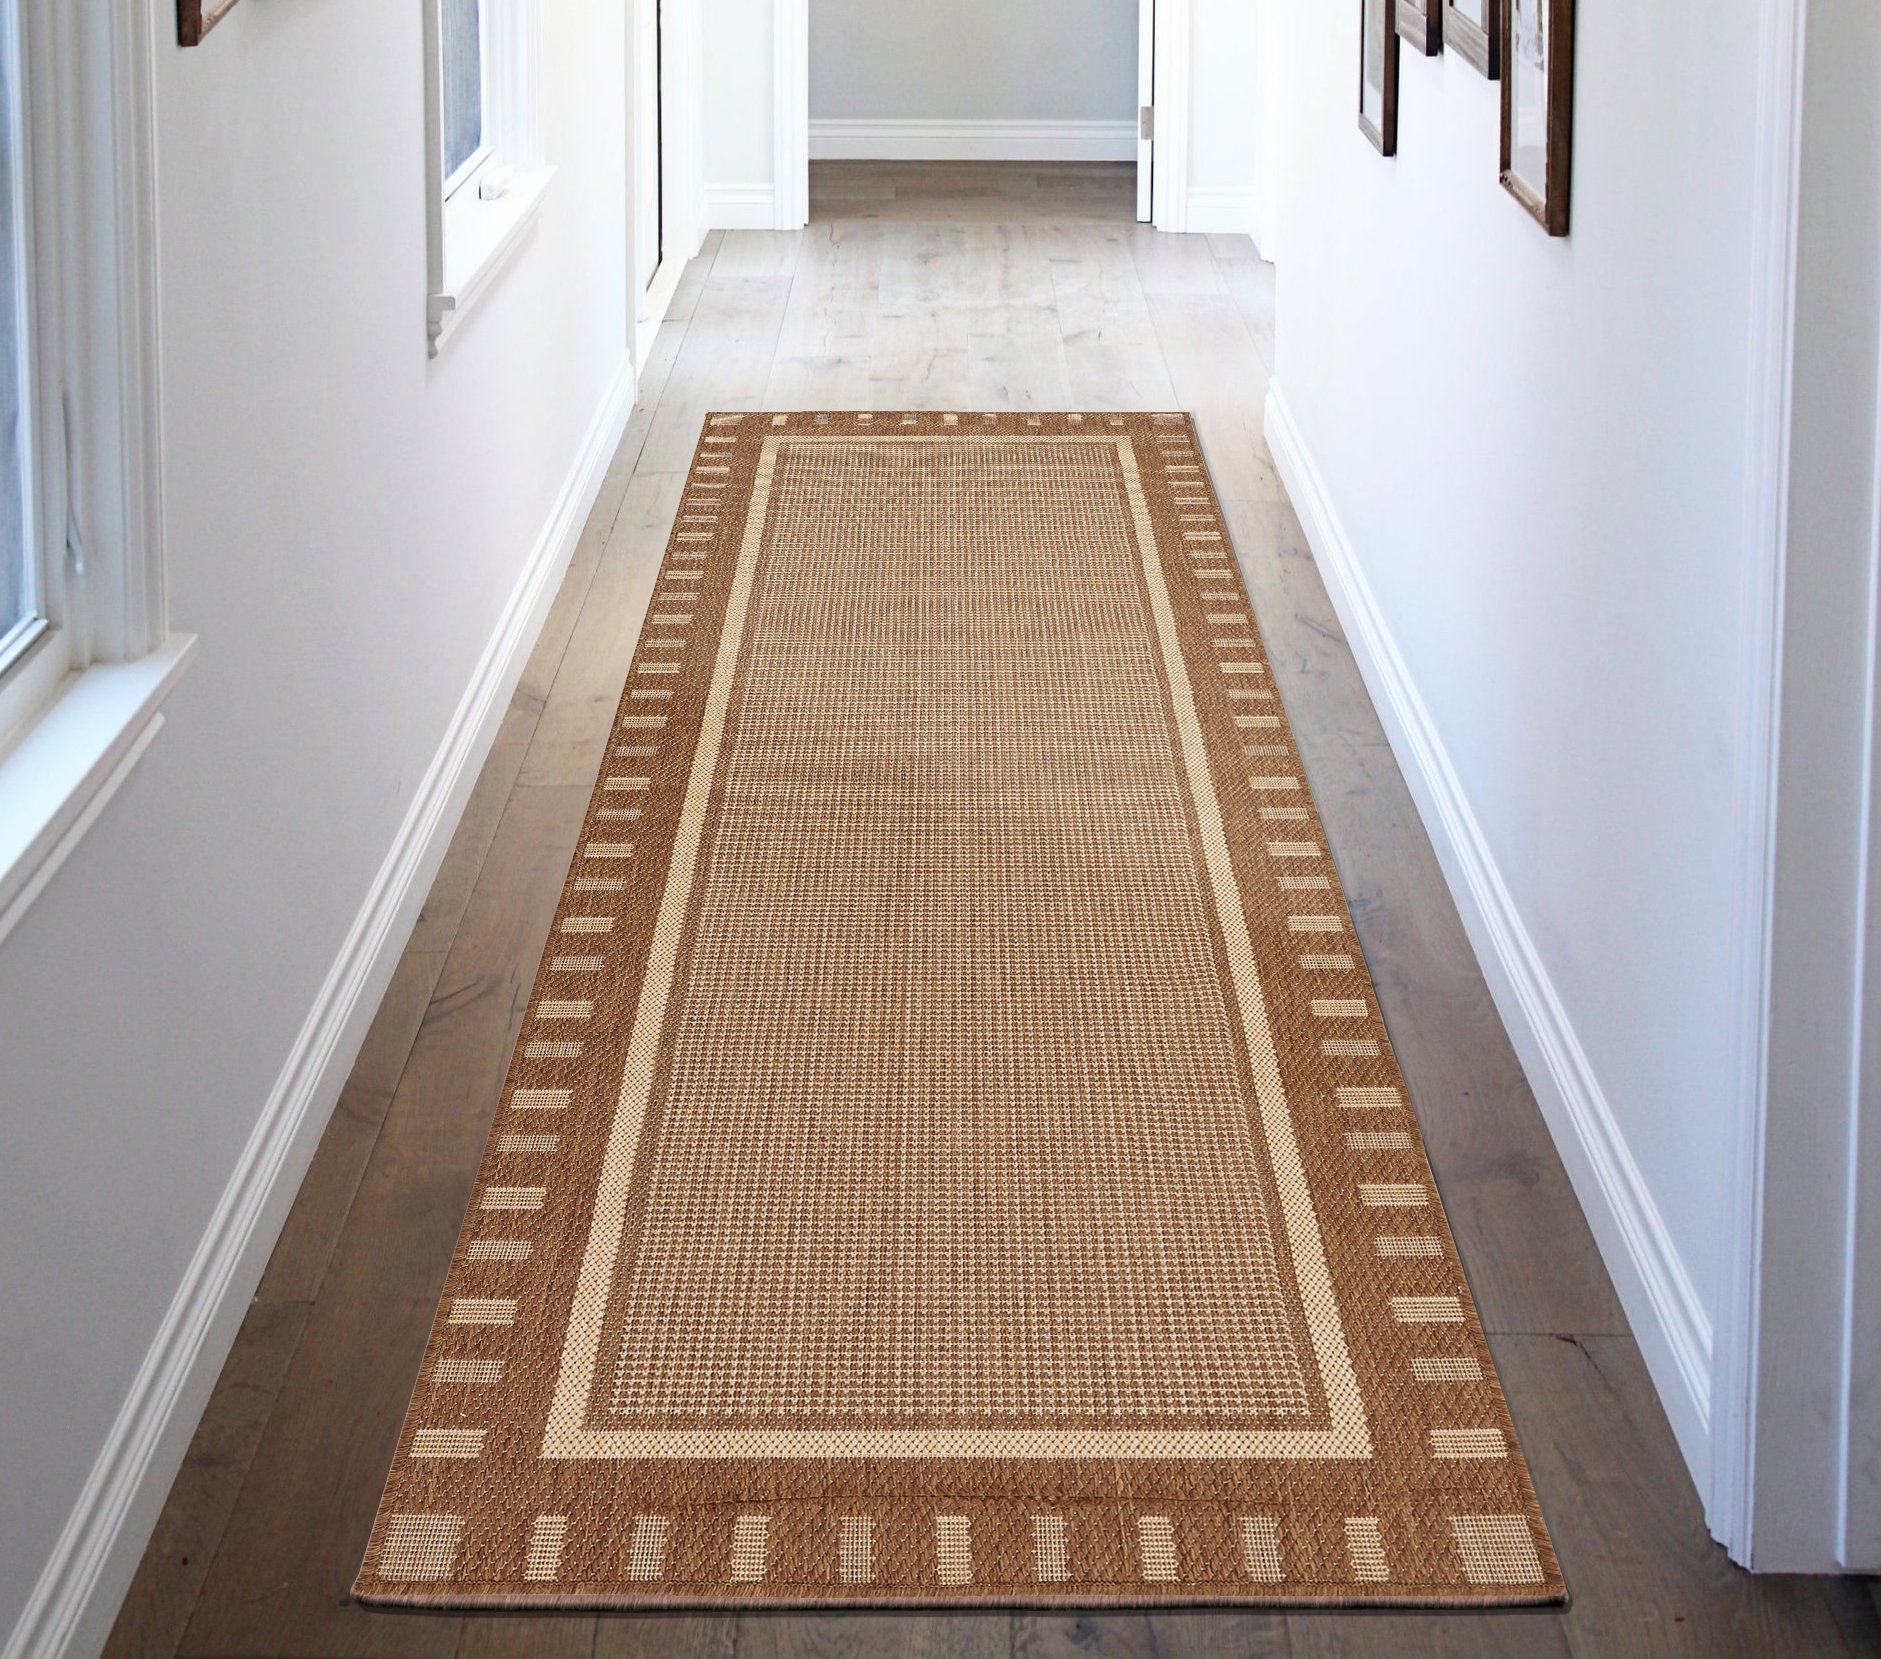 Ottomanson JRD8838-3X7 Jardin Collection Contemporary Bordered Design Indoor/Outdoor Jute Backing Runner Rug, 2'7'' x 7'0'', Brown